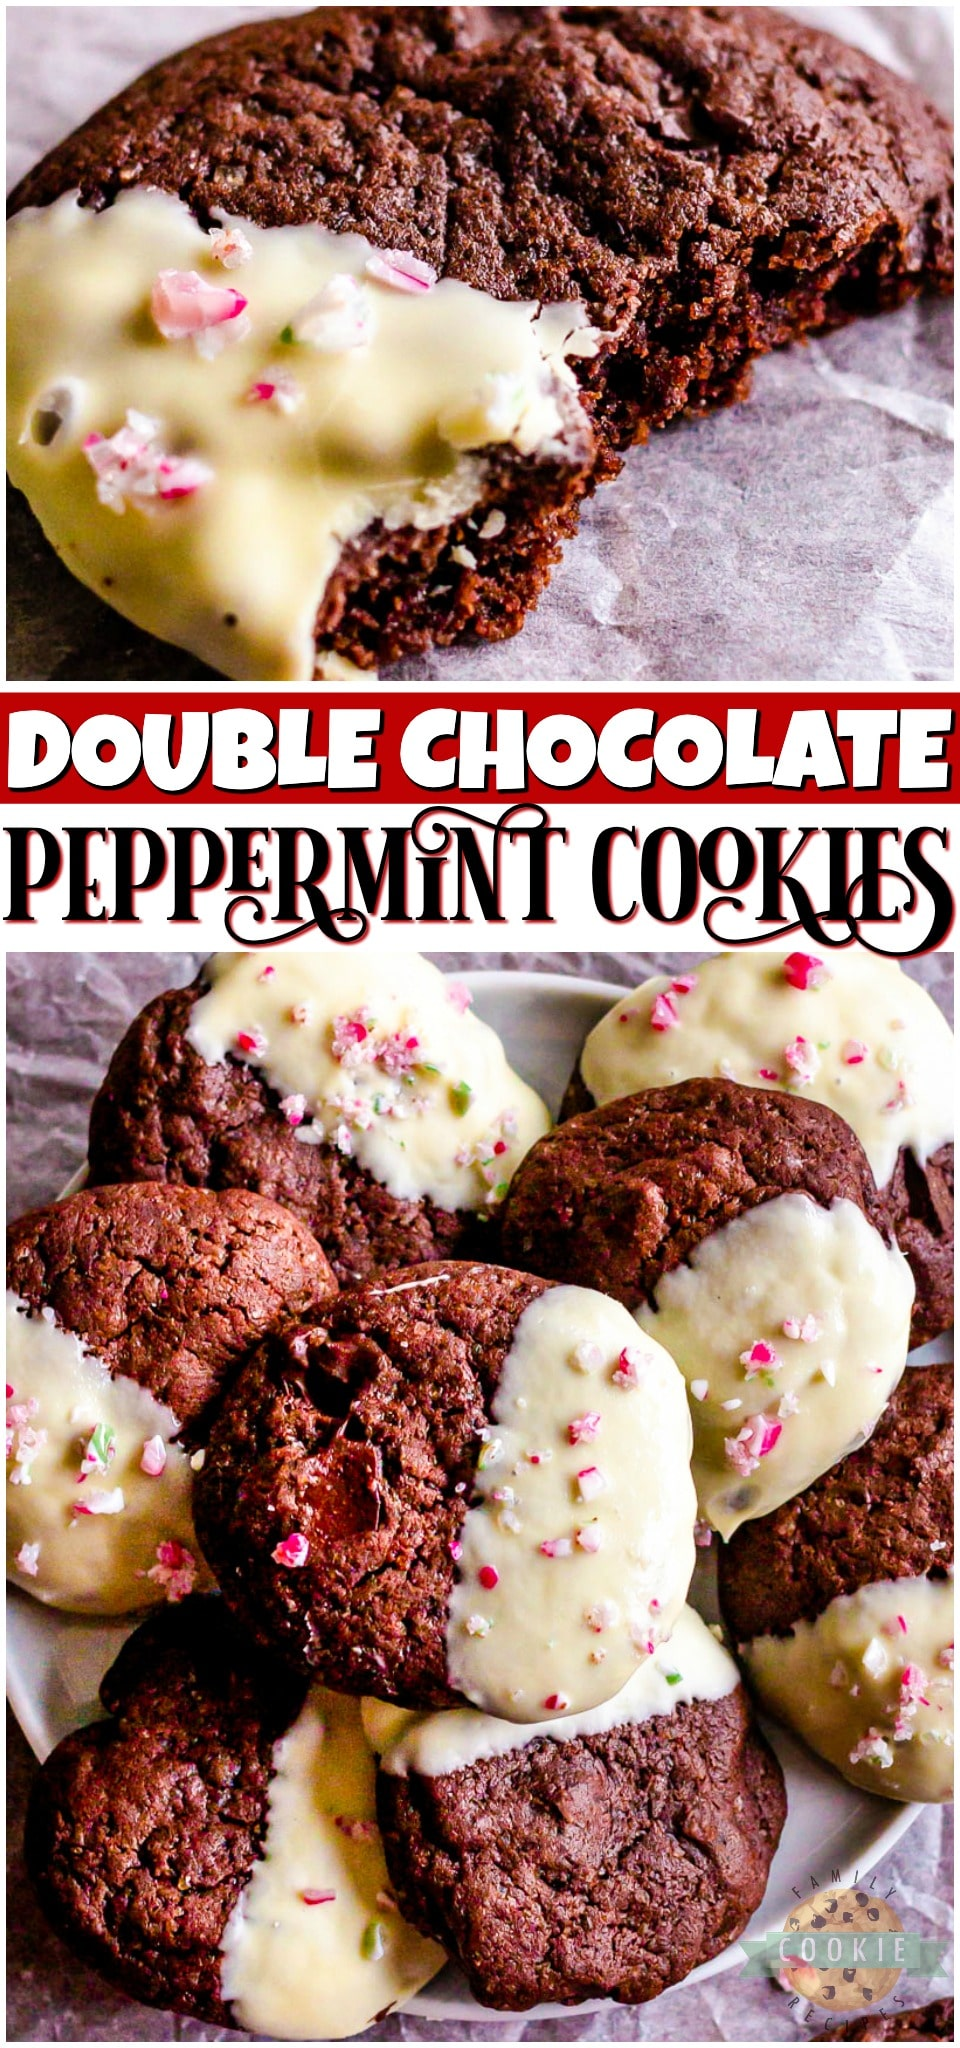 Chocolate Peppermint Cookies are a delicious double chocolate minty cookie that's dipped in white chocolate! Festive holiday cookie perfect for goodie trays!